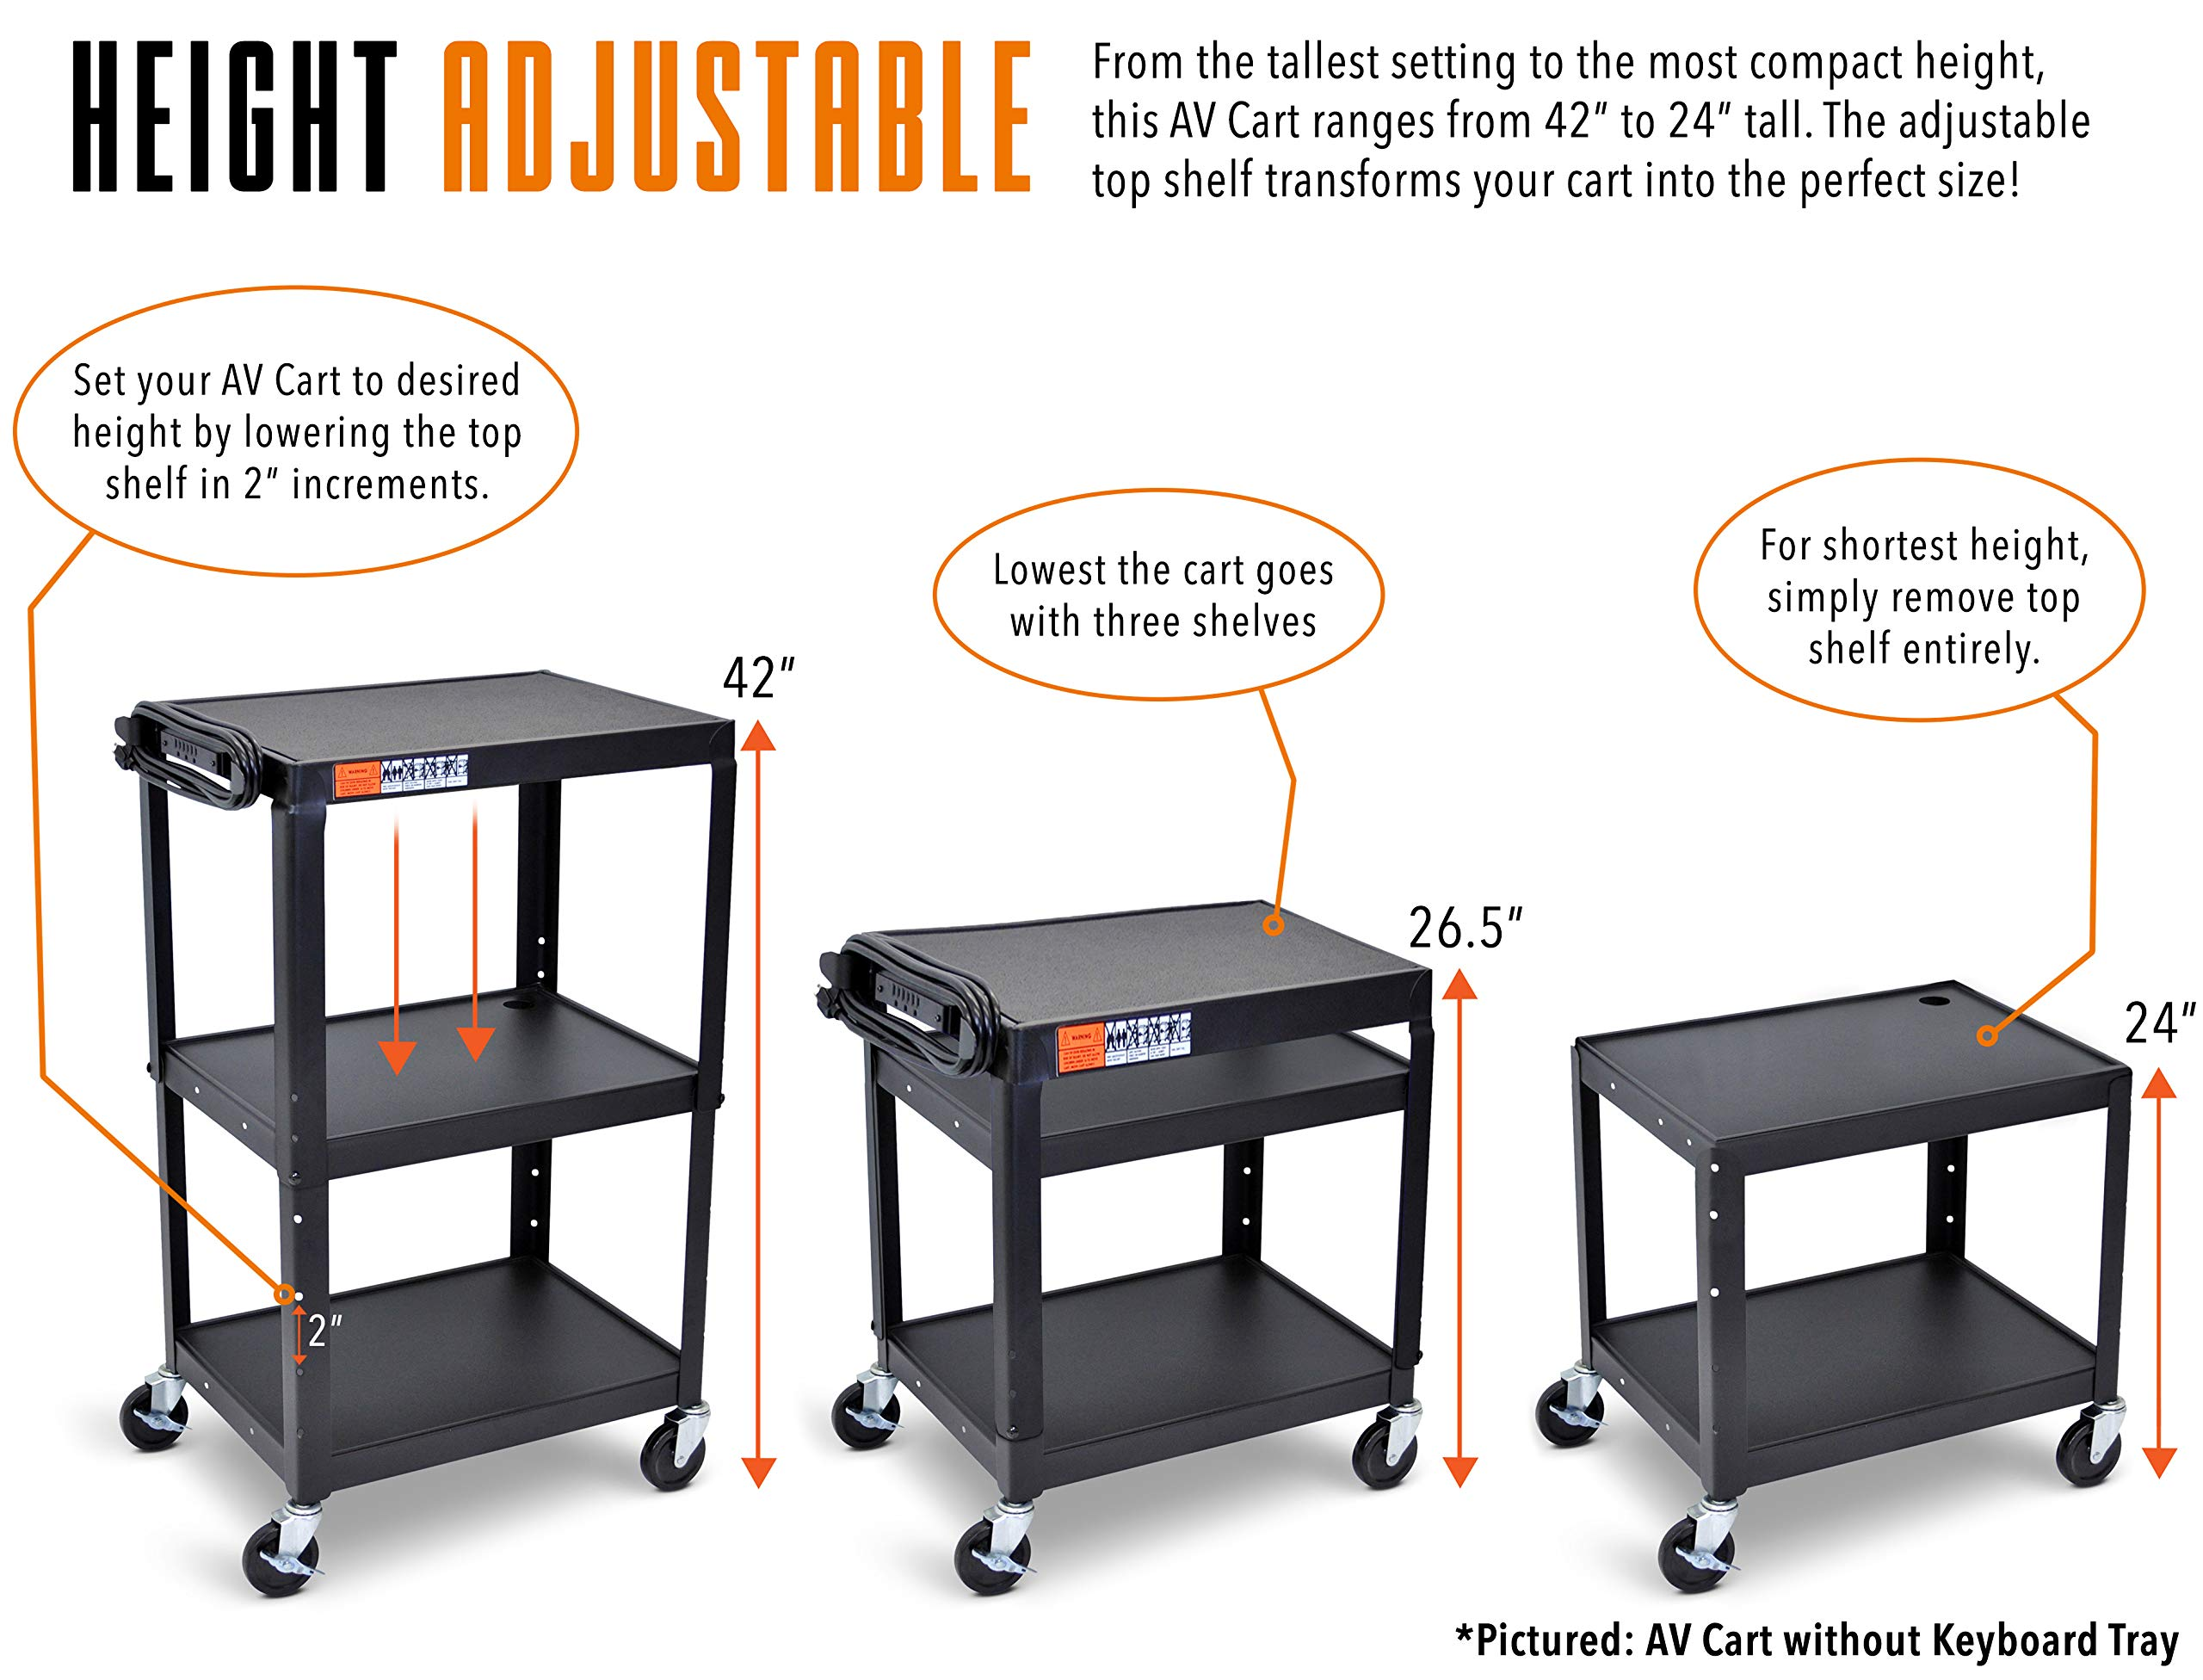 Line Leader Extra Wide AV Cart with Lockable Wheels -Adjustable Shelf Height- Includes Pullout Keyboard Tray and Cord Management! (42x32x20) (Extra Wide AV Cart - Black) by Stand Steady (Image #3)